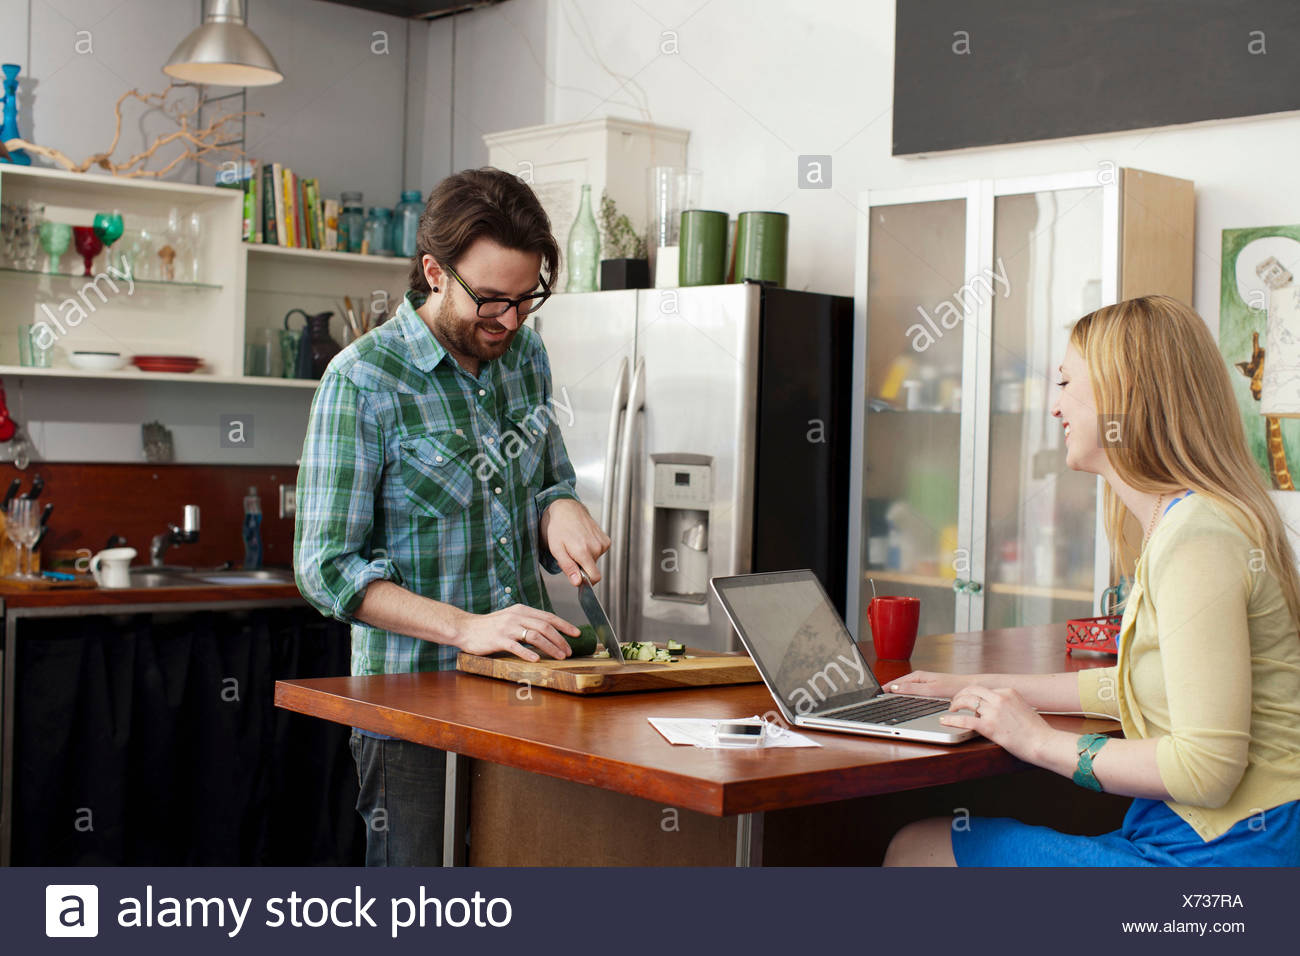 Woman on laptop computer, man chopping vegetables Photo Stock